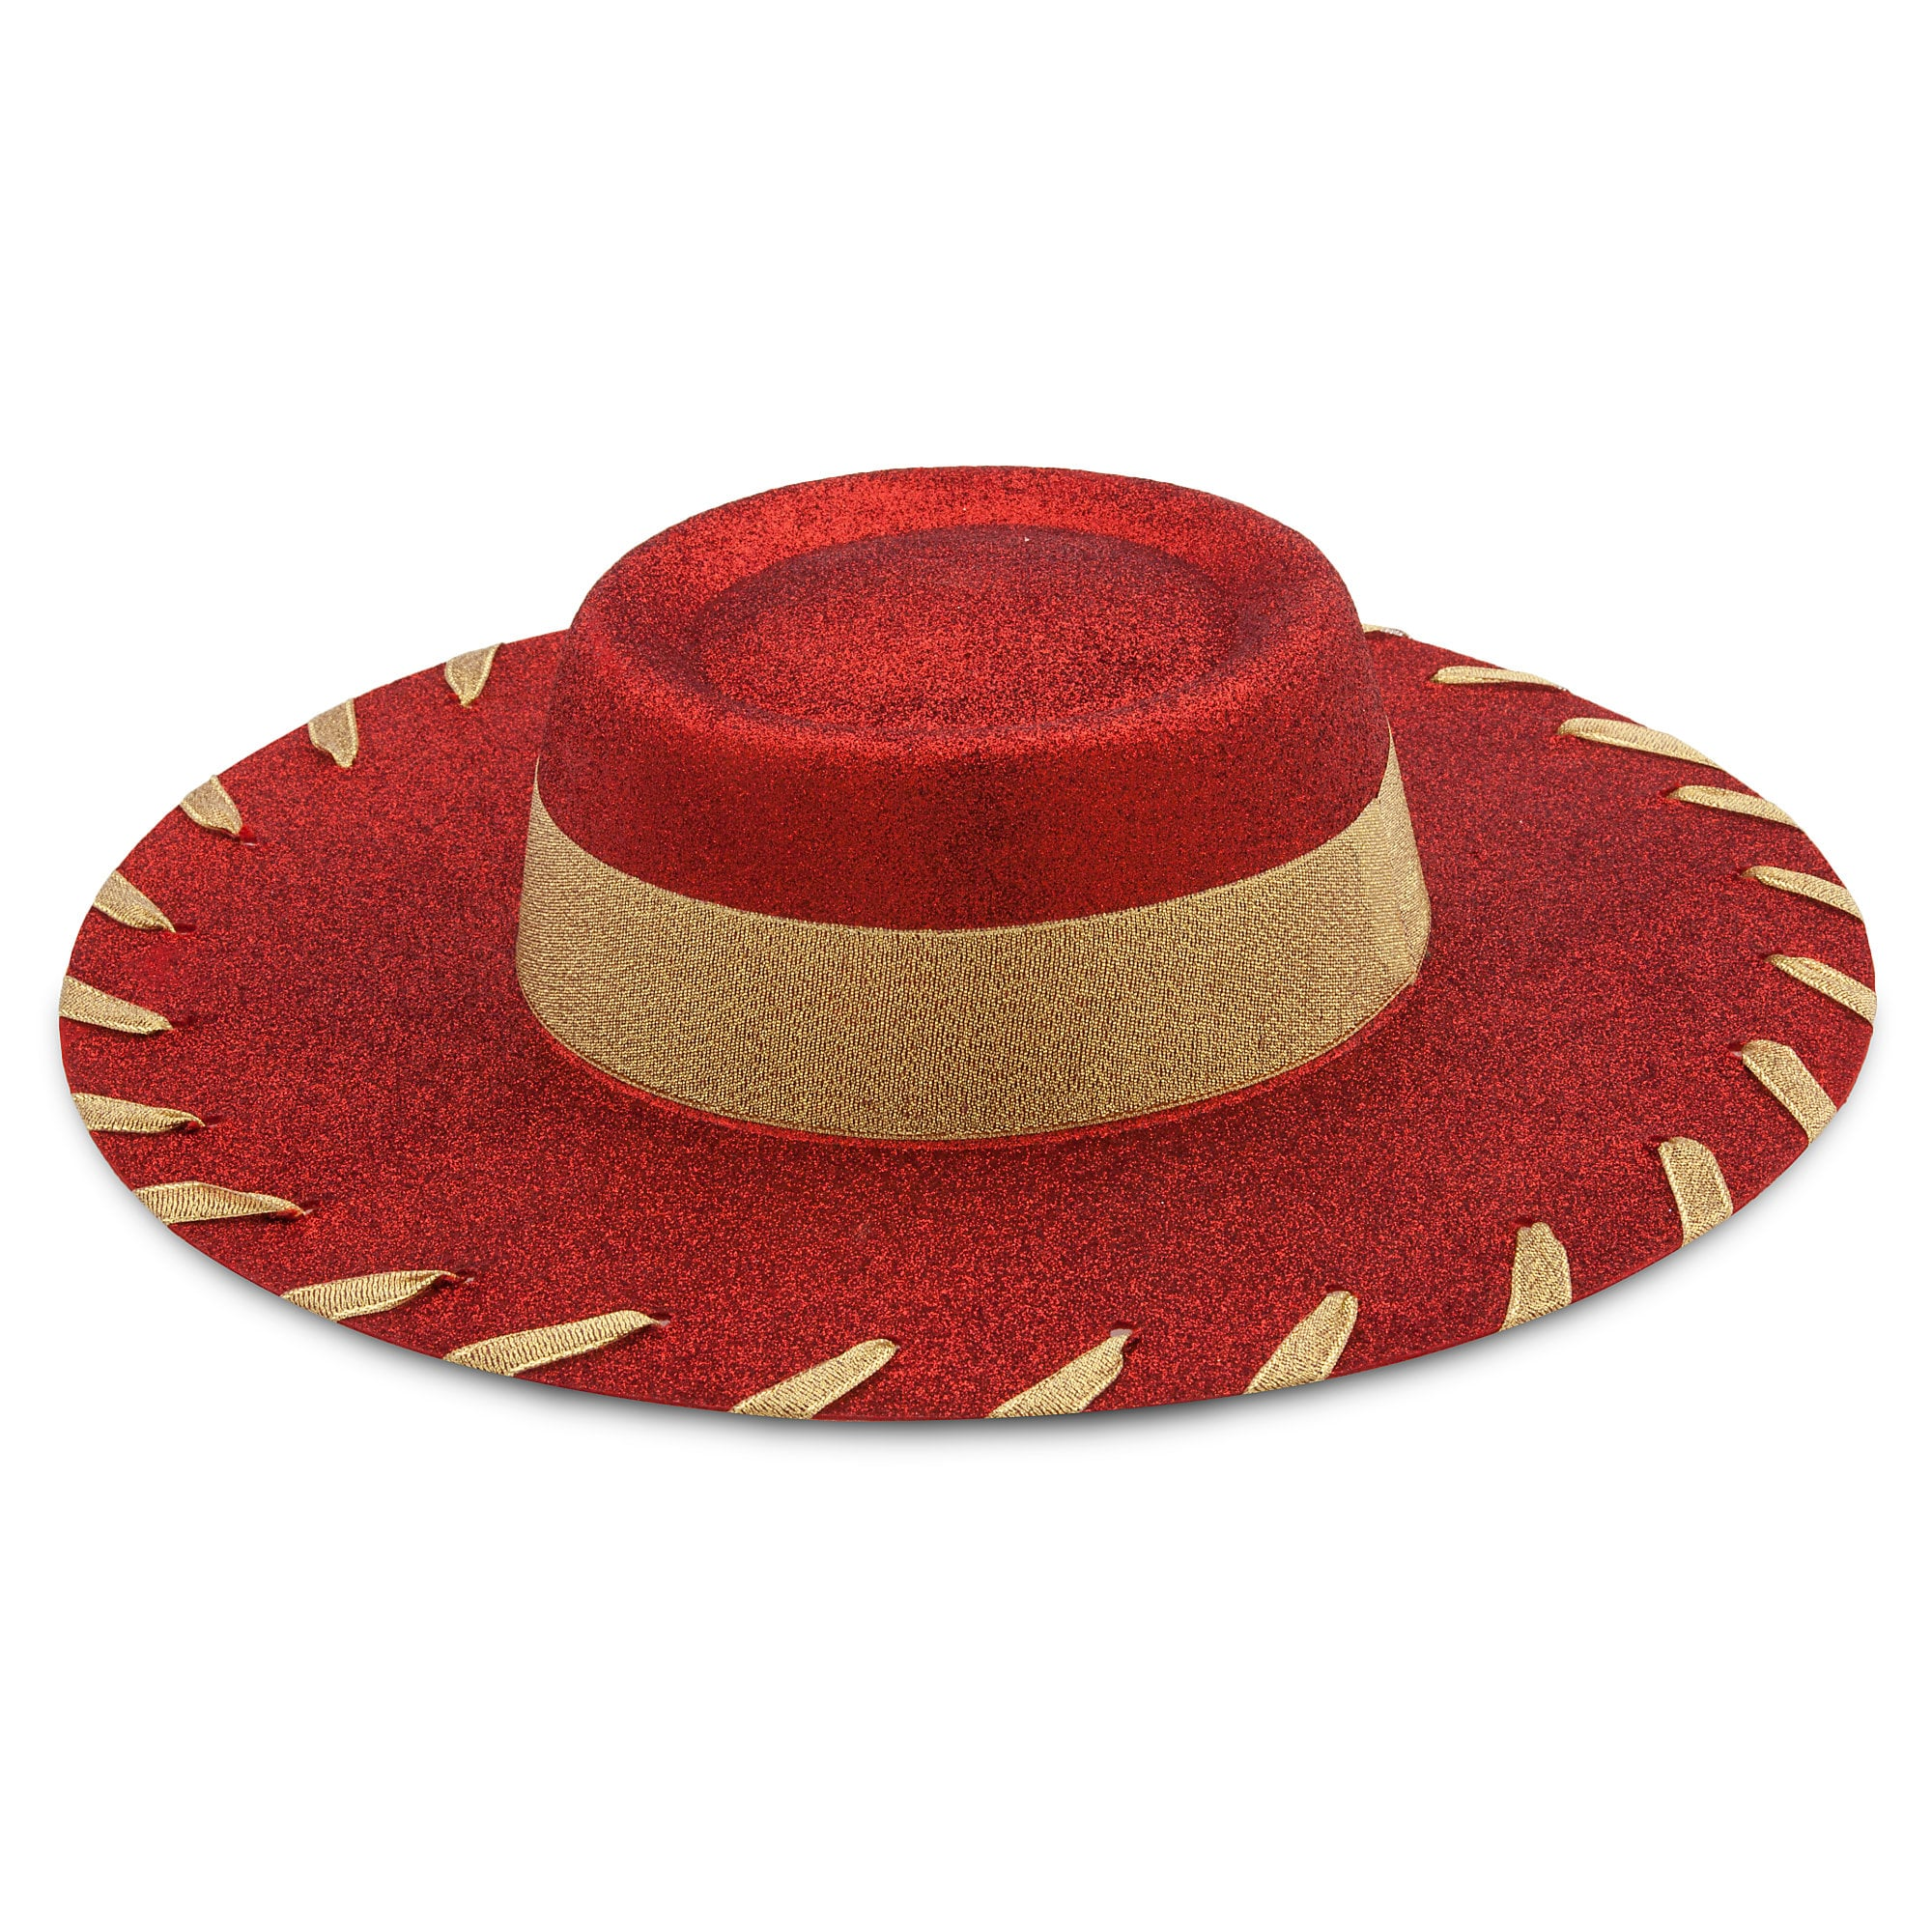 582f15fd46b34 Product image of jessie costume hat for kids jpg 1200x1200 Toy story jessie  hat collection